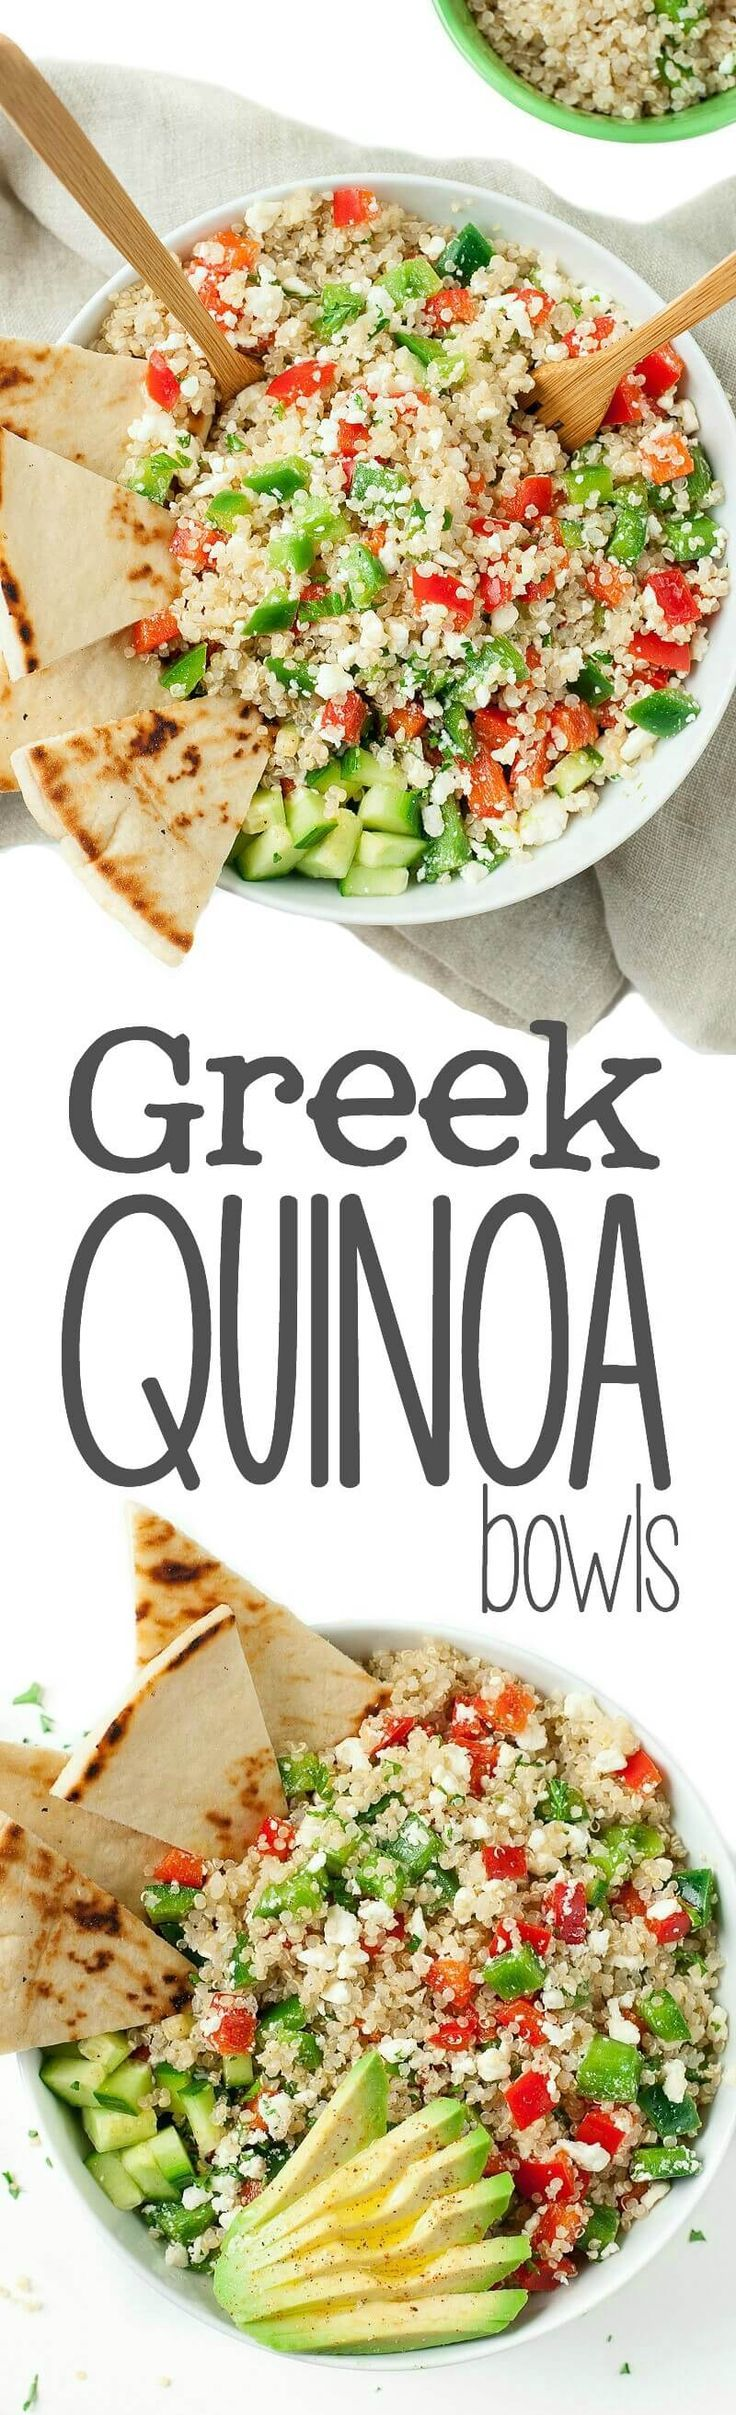 Loaded with fresh veggies and drizzled in a light homemade dressing, these tasty vegetarian Greek Quinoa Bowls make healthy eating a breeze!   @andwhatelse